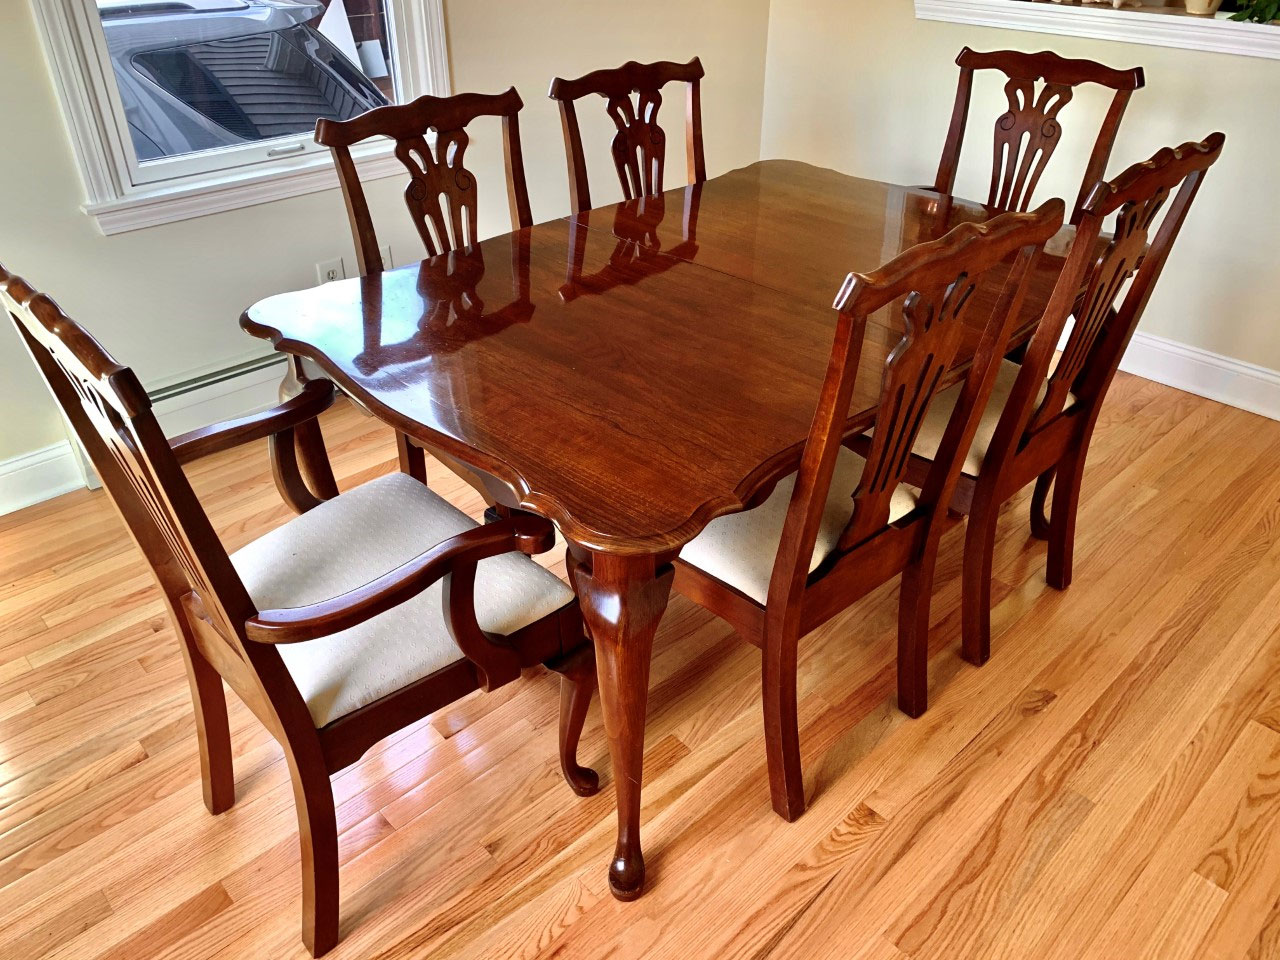 Pennsylvania House Solid Cherry 7 Piece, Used Pennsylvania House Dining Room Furniture